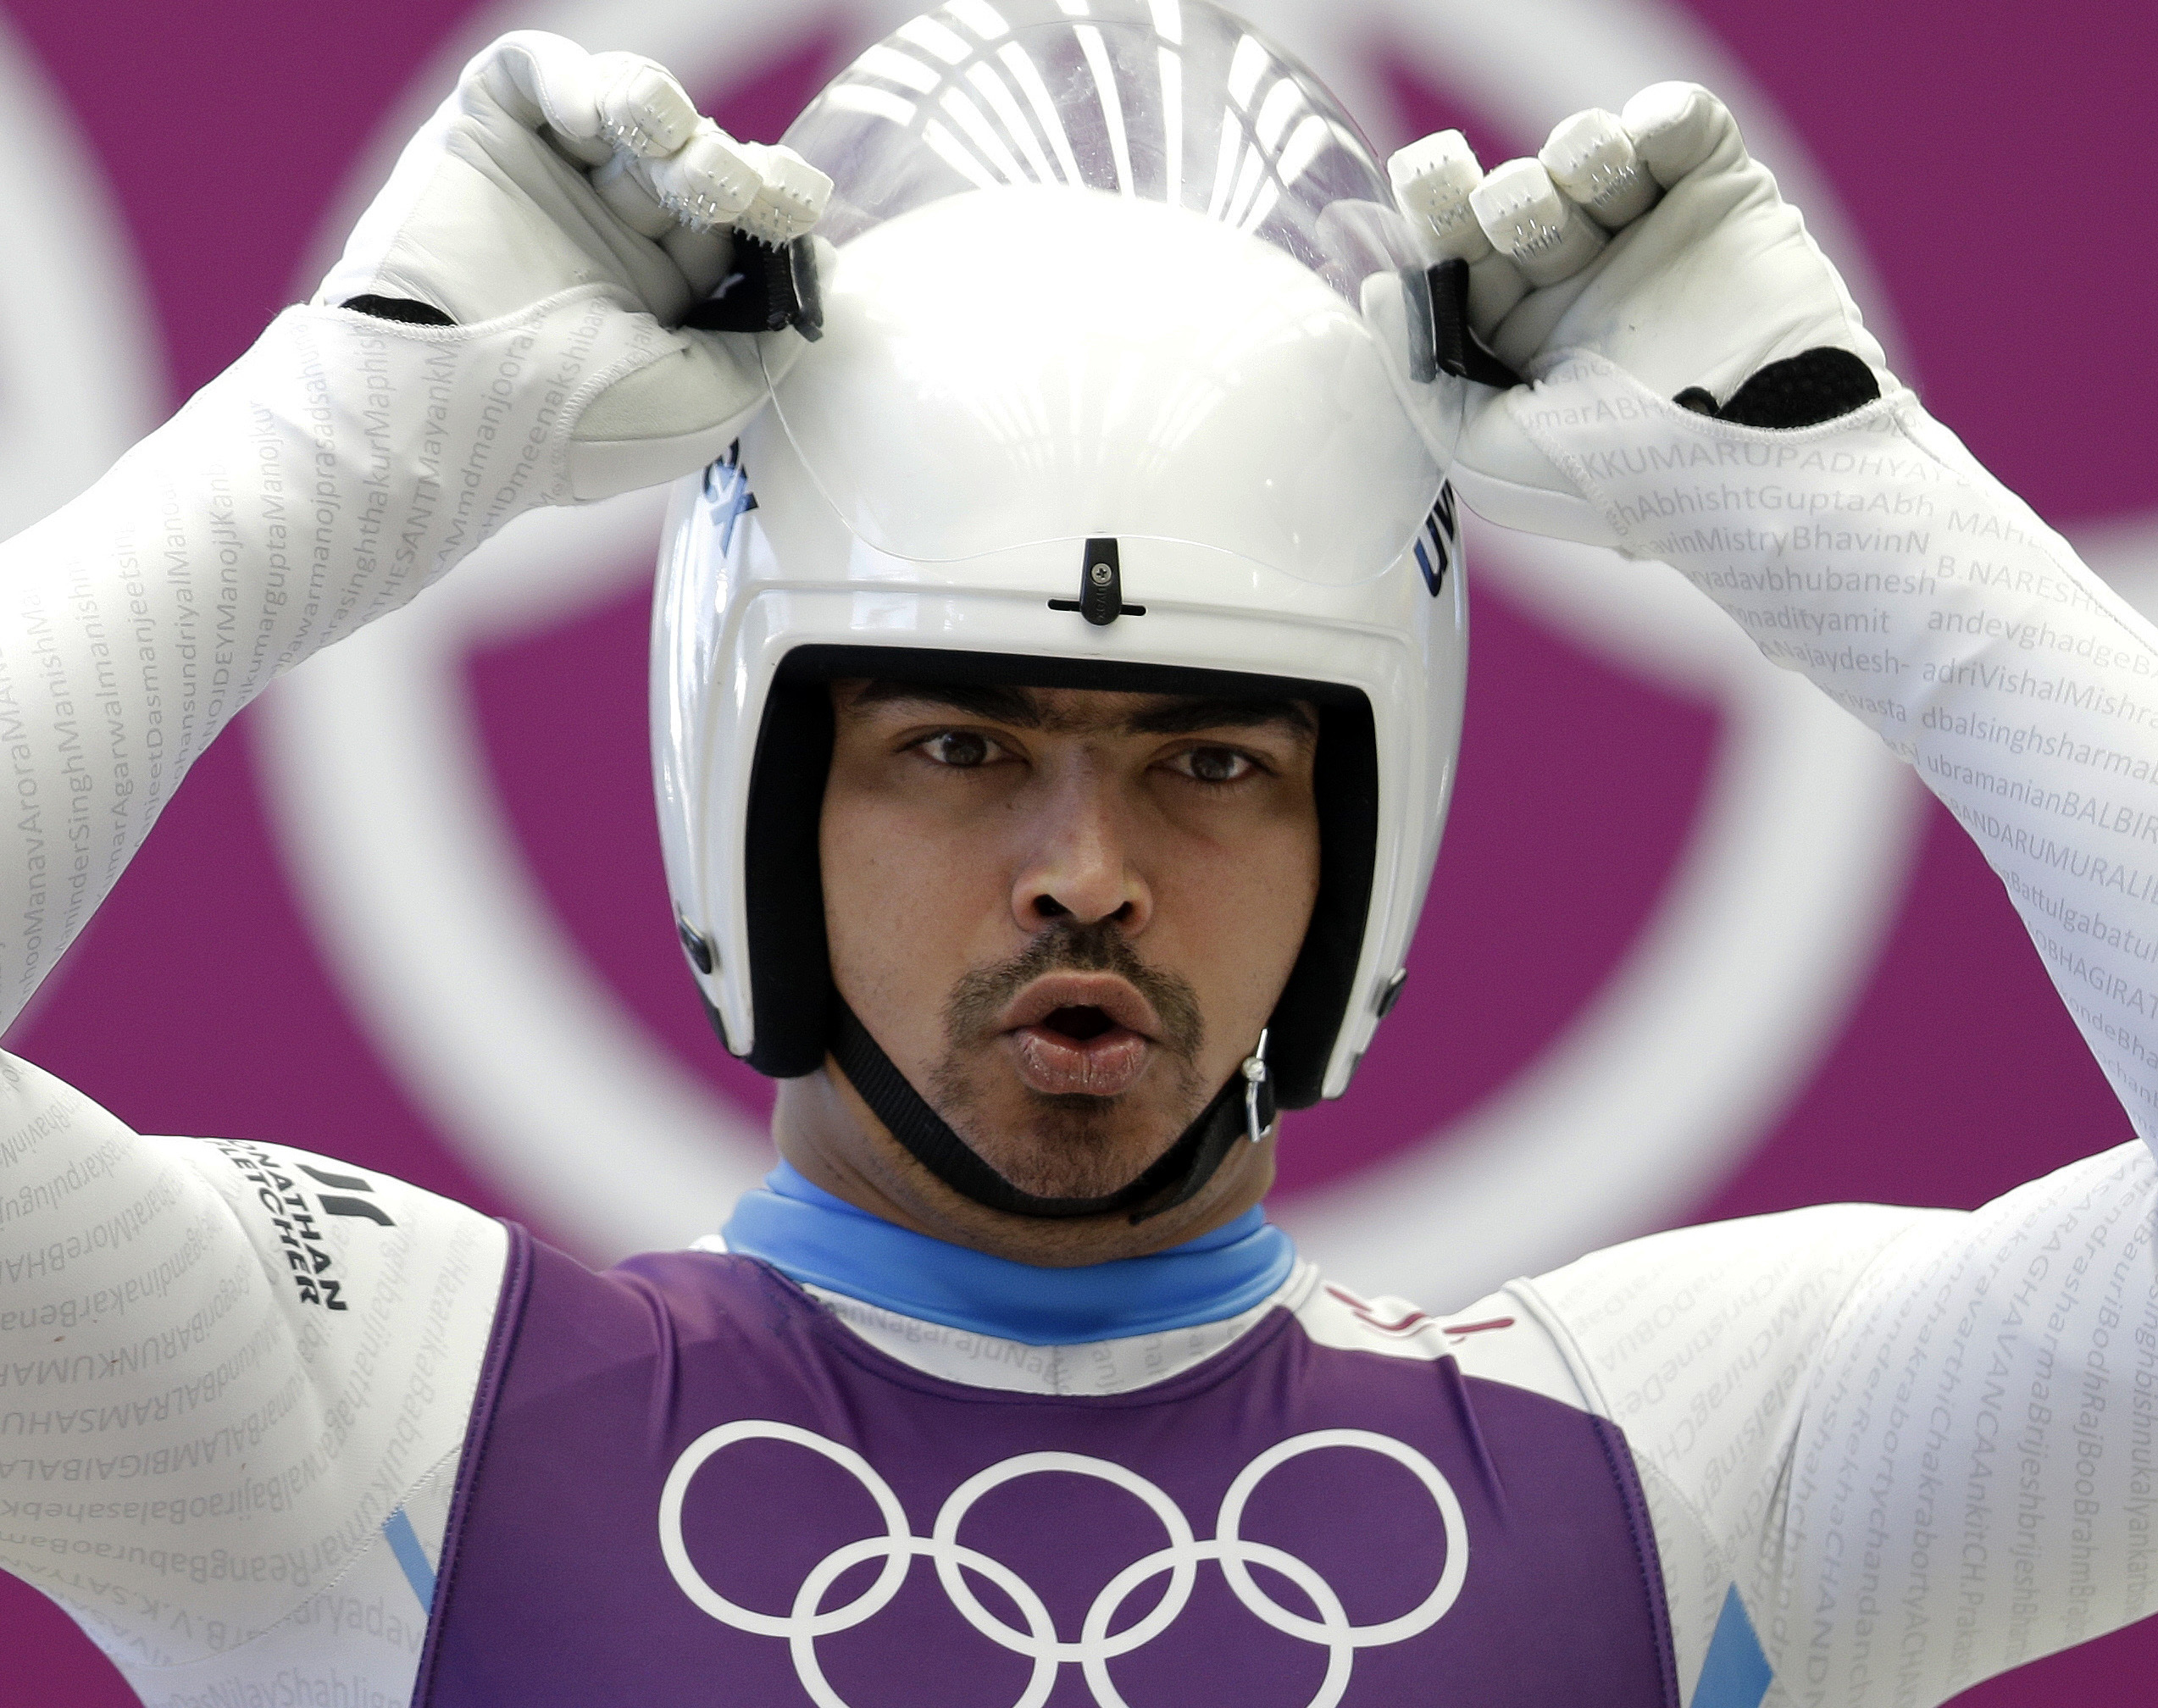 FILE - In this Feb. 6, 2014 file photo, Shiva Keshavan of India prepares to start his run during a training session for the men's singles luge at the 2014 Winter Olympics in Krasnaya Polyana, Russia. Keshavan competed under the Olympic flag because India's Olympic body had been suspended by the IOC in 2012 over a corruption scandal. On Tuesday, Feb. 11, 2014, the IOC executive board reinstated the Indian Olympic body after it held a weekend ballot that complied with ethics rules barring corruption-tainted officials from running for election. (AP Photo/Natacha Pisarenko, File)